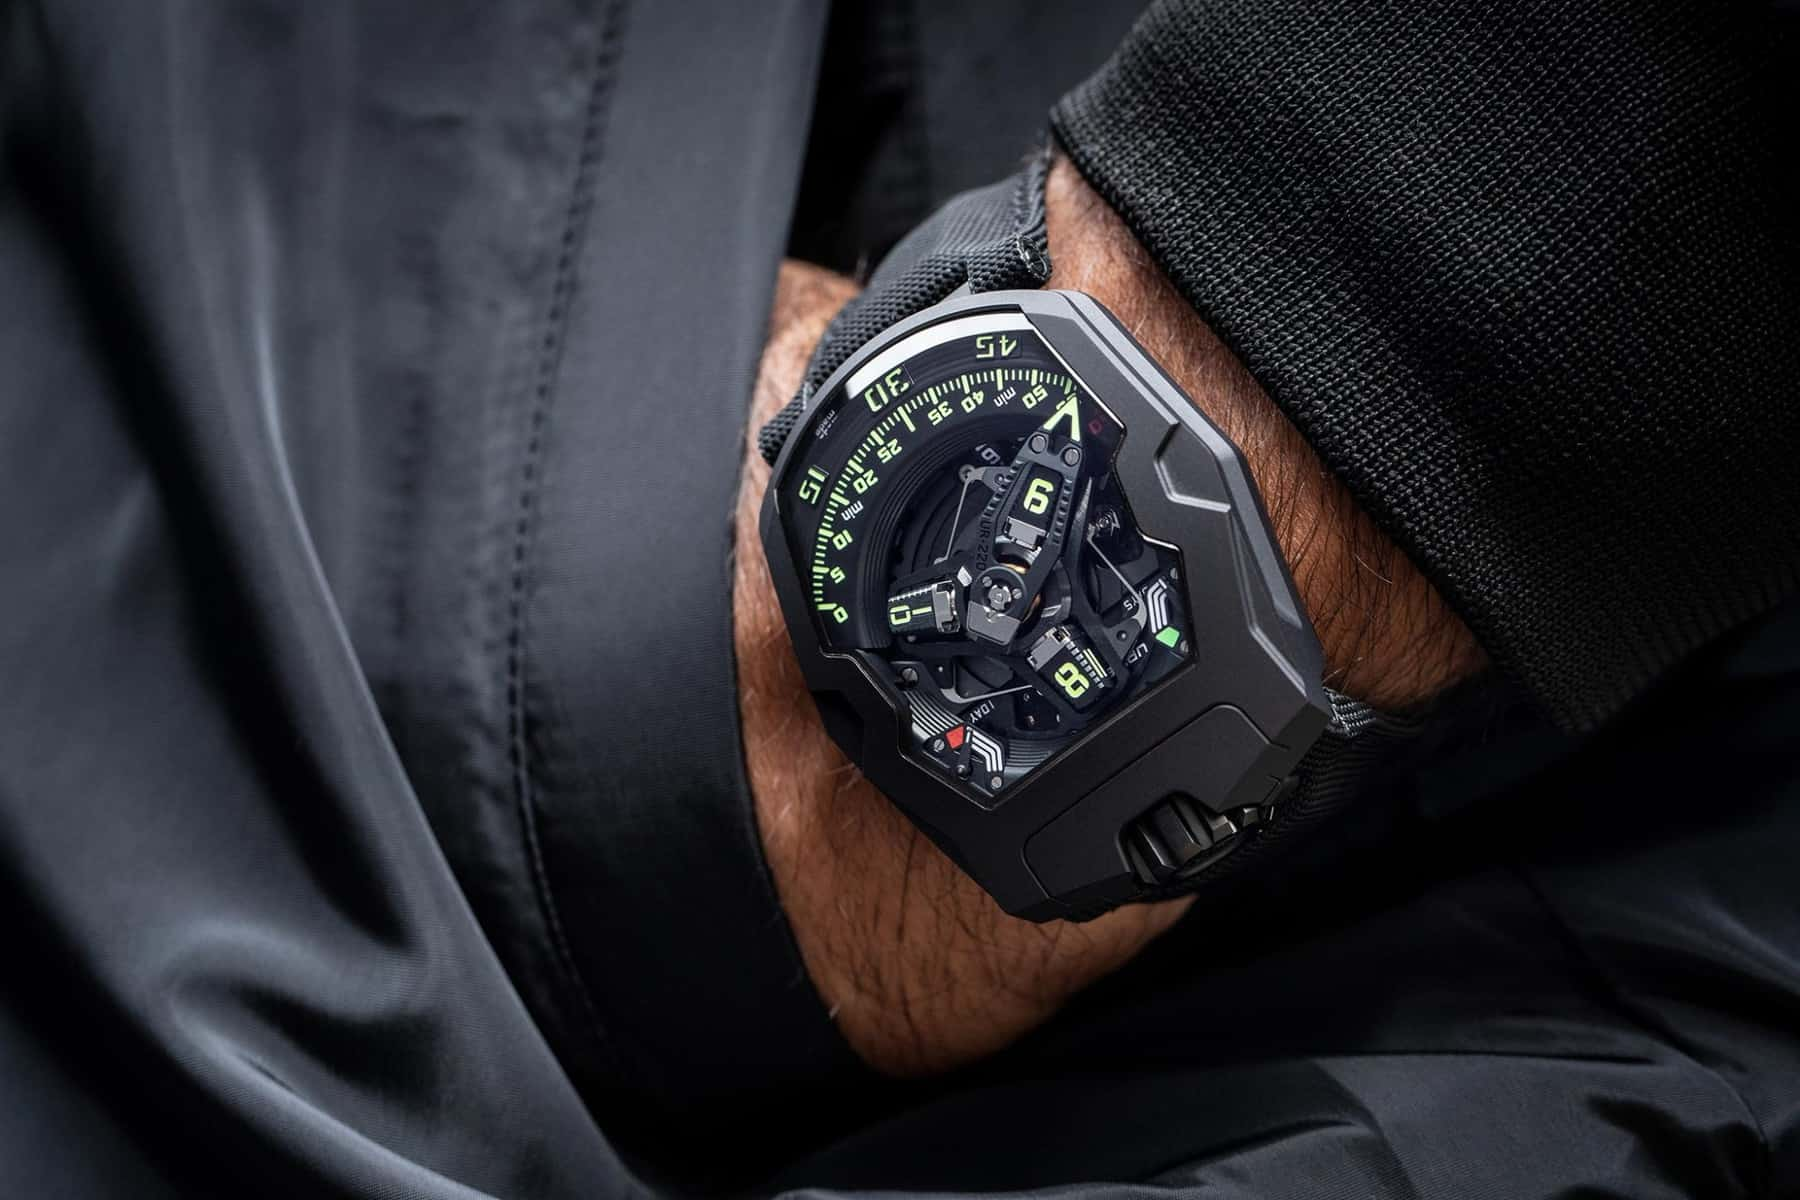 The Stunning URWERK UR-220 All Black Arrives Just In Time